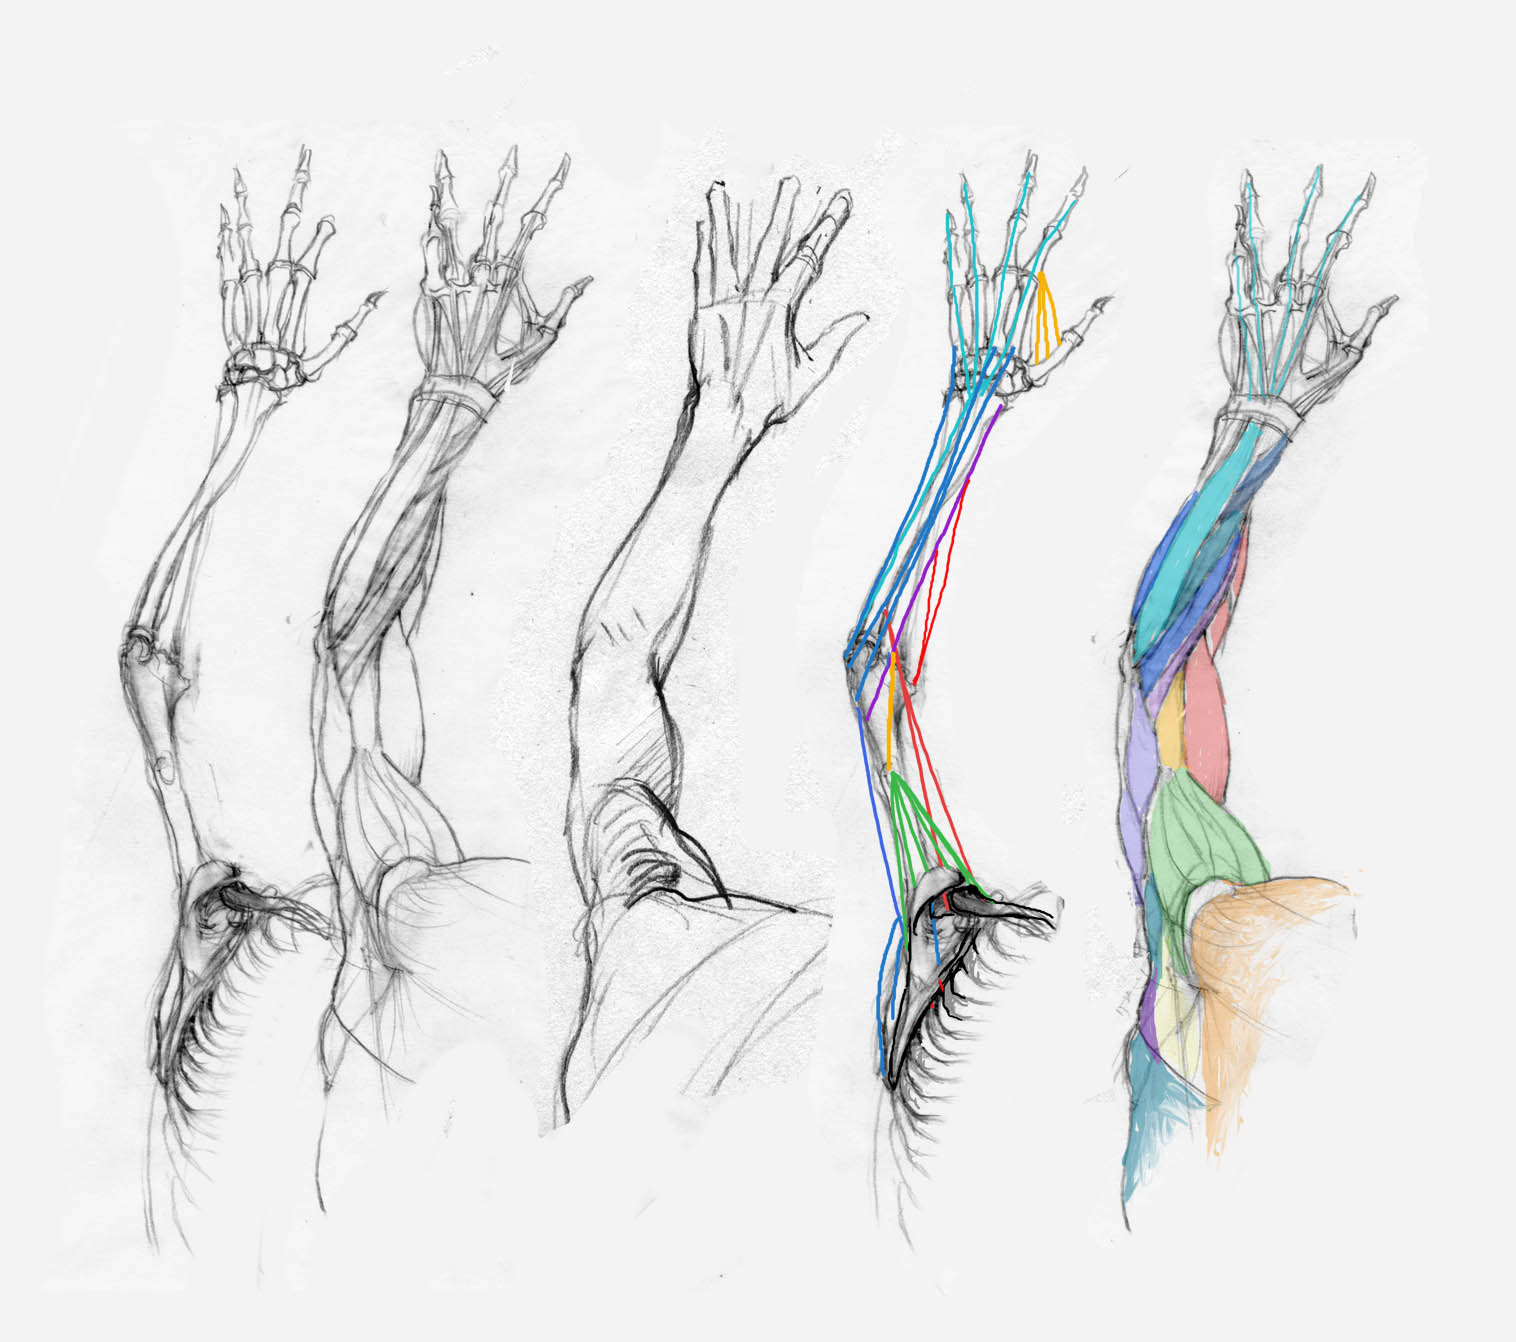 Skeleton Arm Drawing At Getdrawings Free For Personal Use